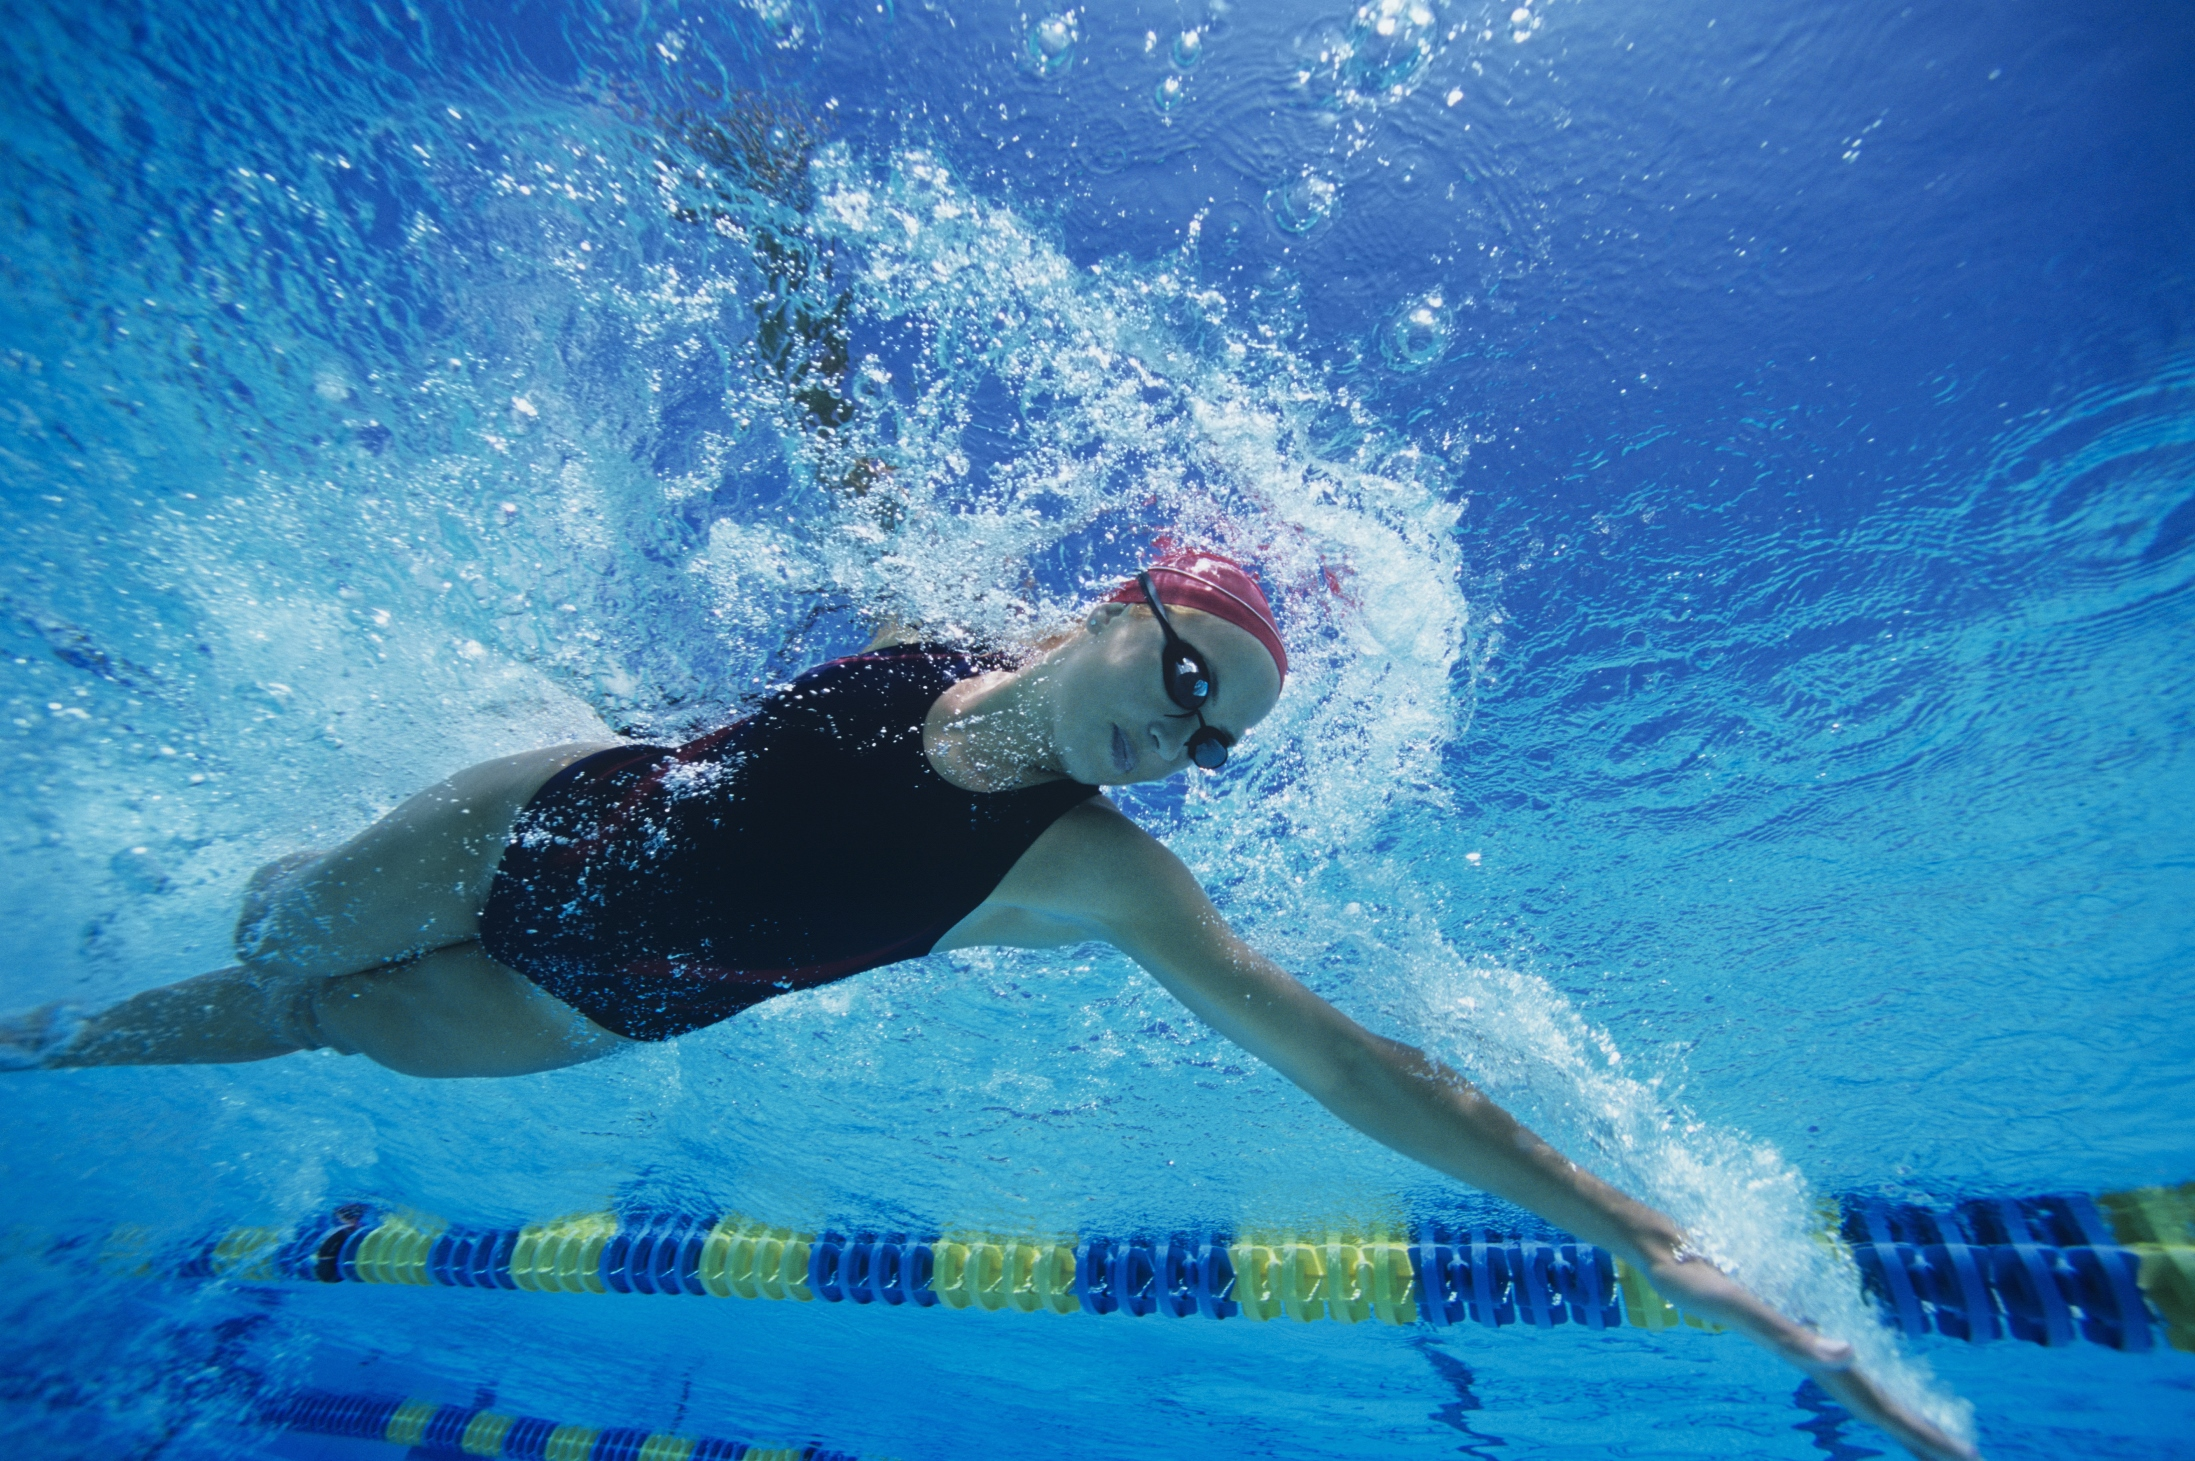 Swimathon, the world's biggest fundraising swim will take place to raise funds for Cancer Research UK and Maire Curie, from Friday March 29 to Sunday March 31 2019.